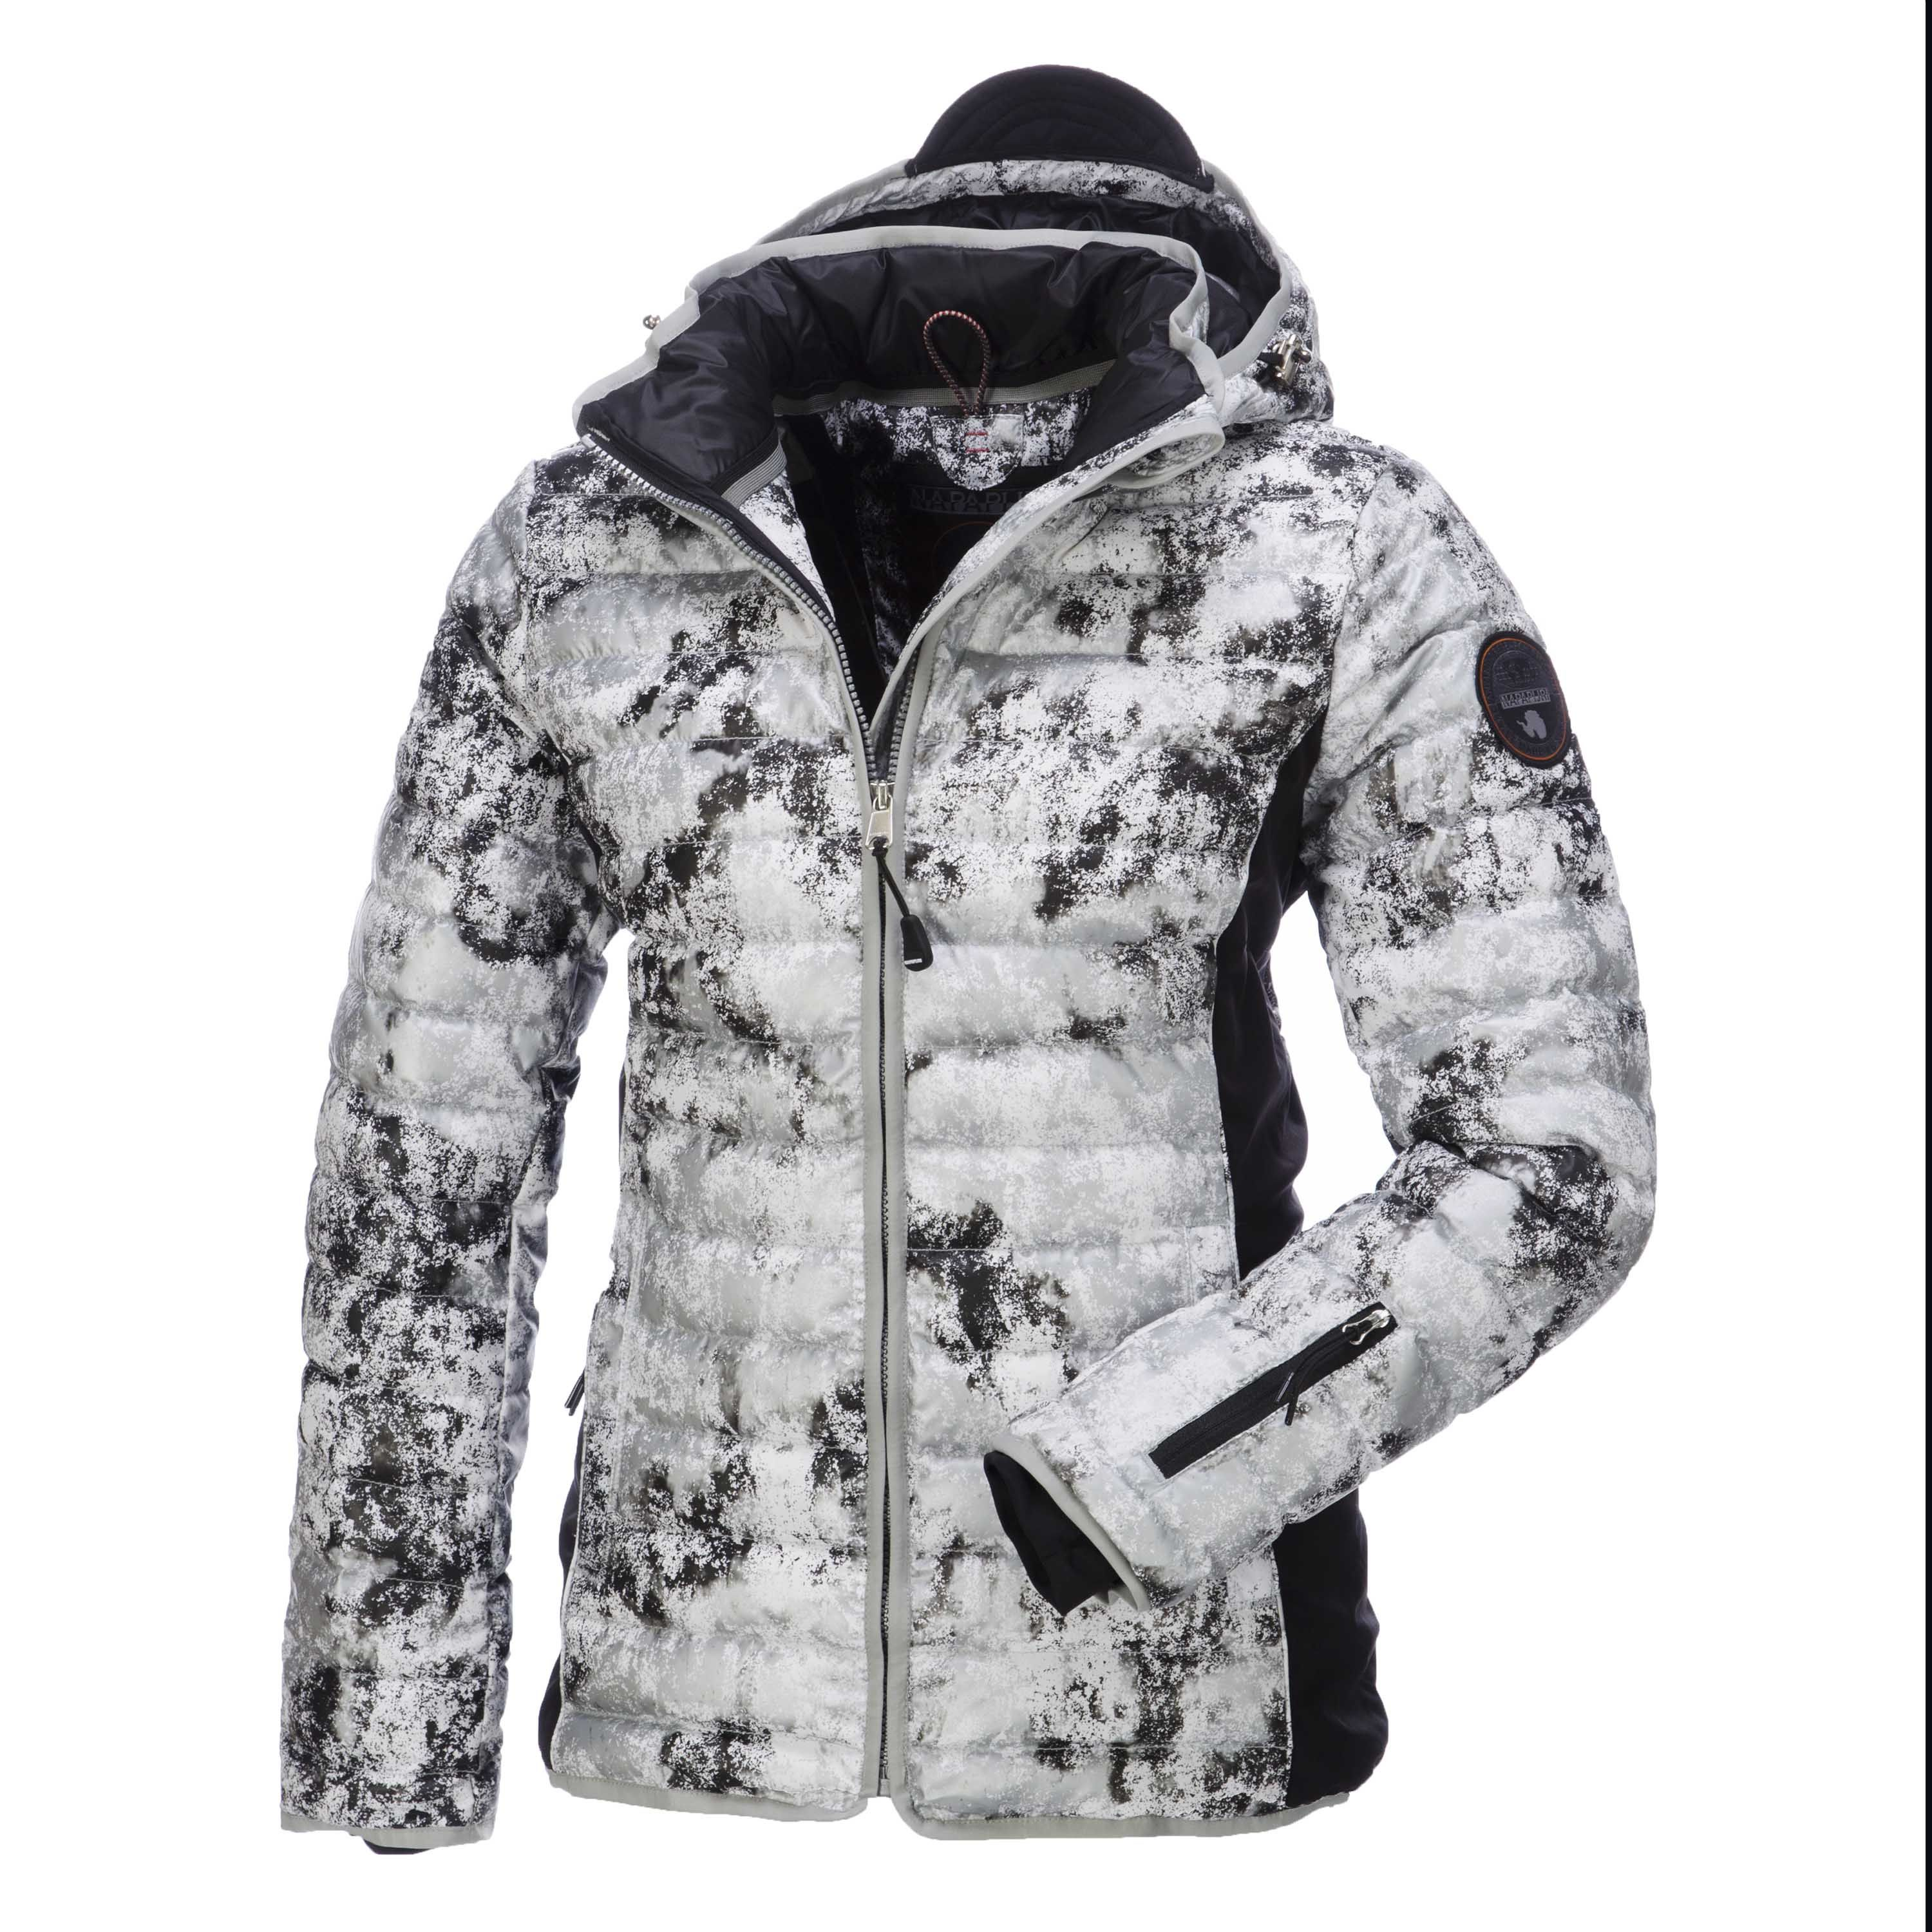 Napapijri Ciny Fantasy, down ski jacket, Women, White-Black-Multicolour Sportive padded down ski jacket bi-coloured Napapijri ski jacket lined with downs.This jackets comes with softshell applications for more movability.